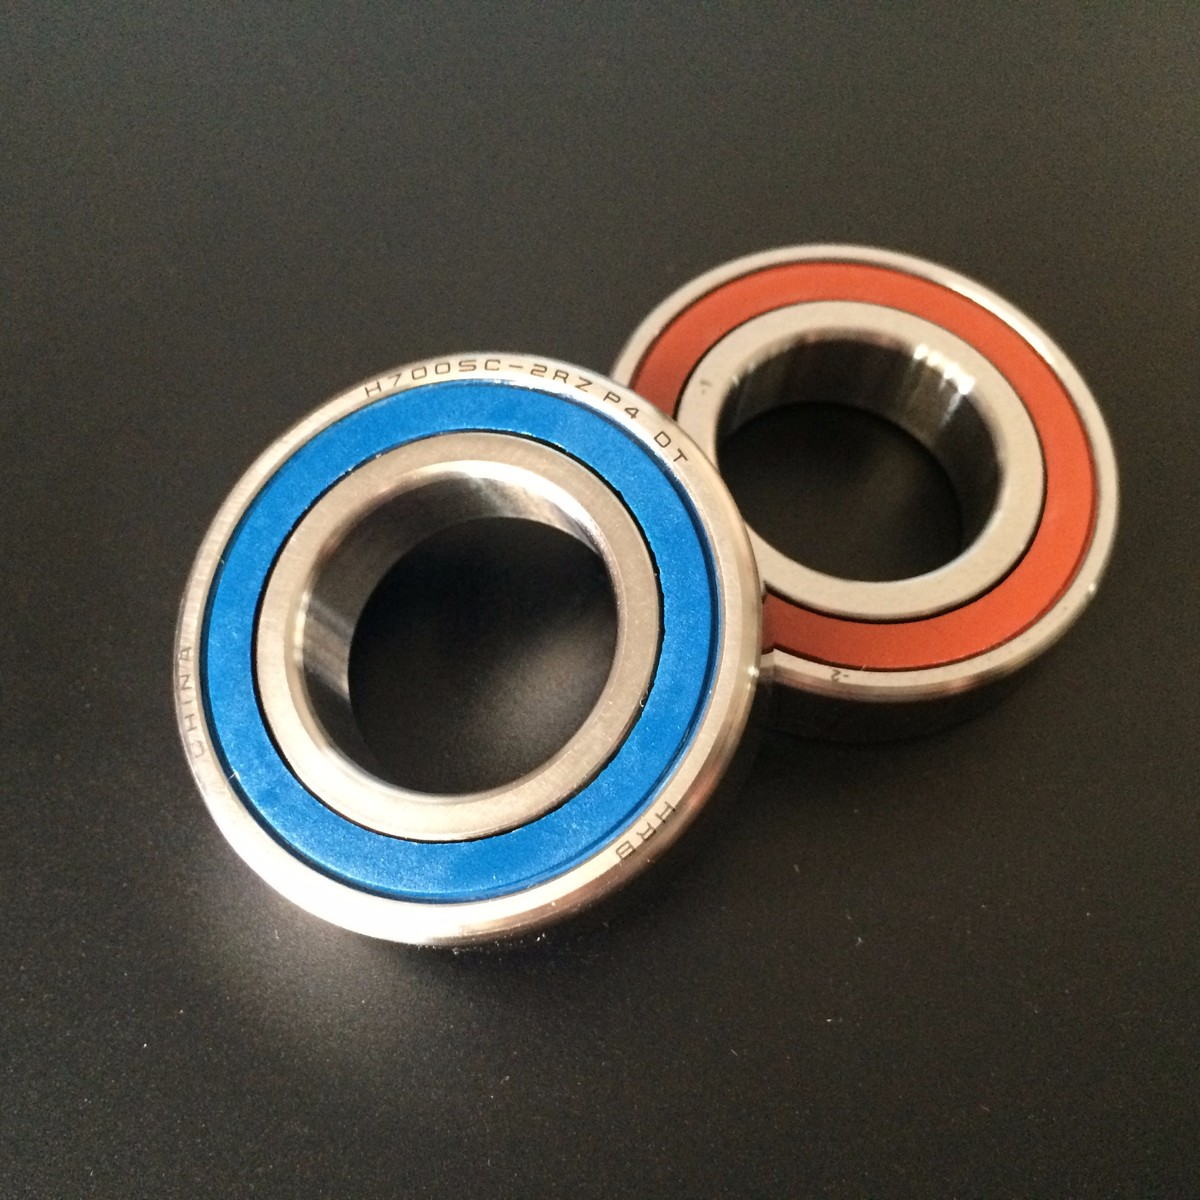 H 7000 7001 7002 7003 7004 7005 C 2RZ/P4 H7005C H7005CP4 H7005 High Precise Bearing For Engraving Machine Spindle Bearing CNC